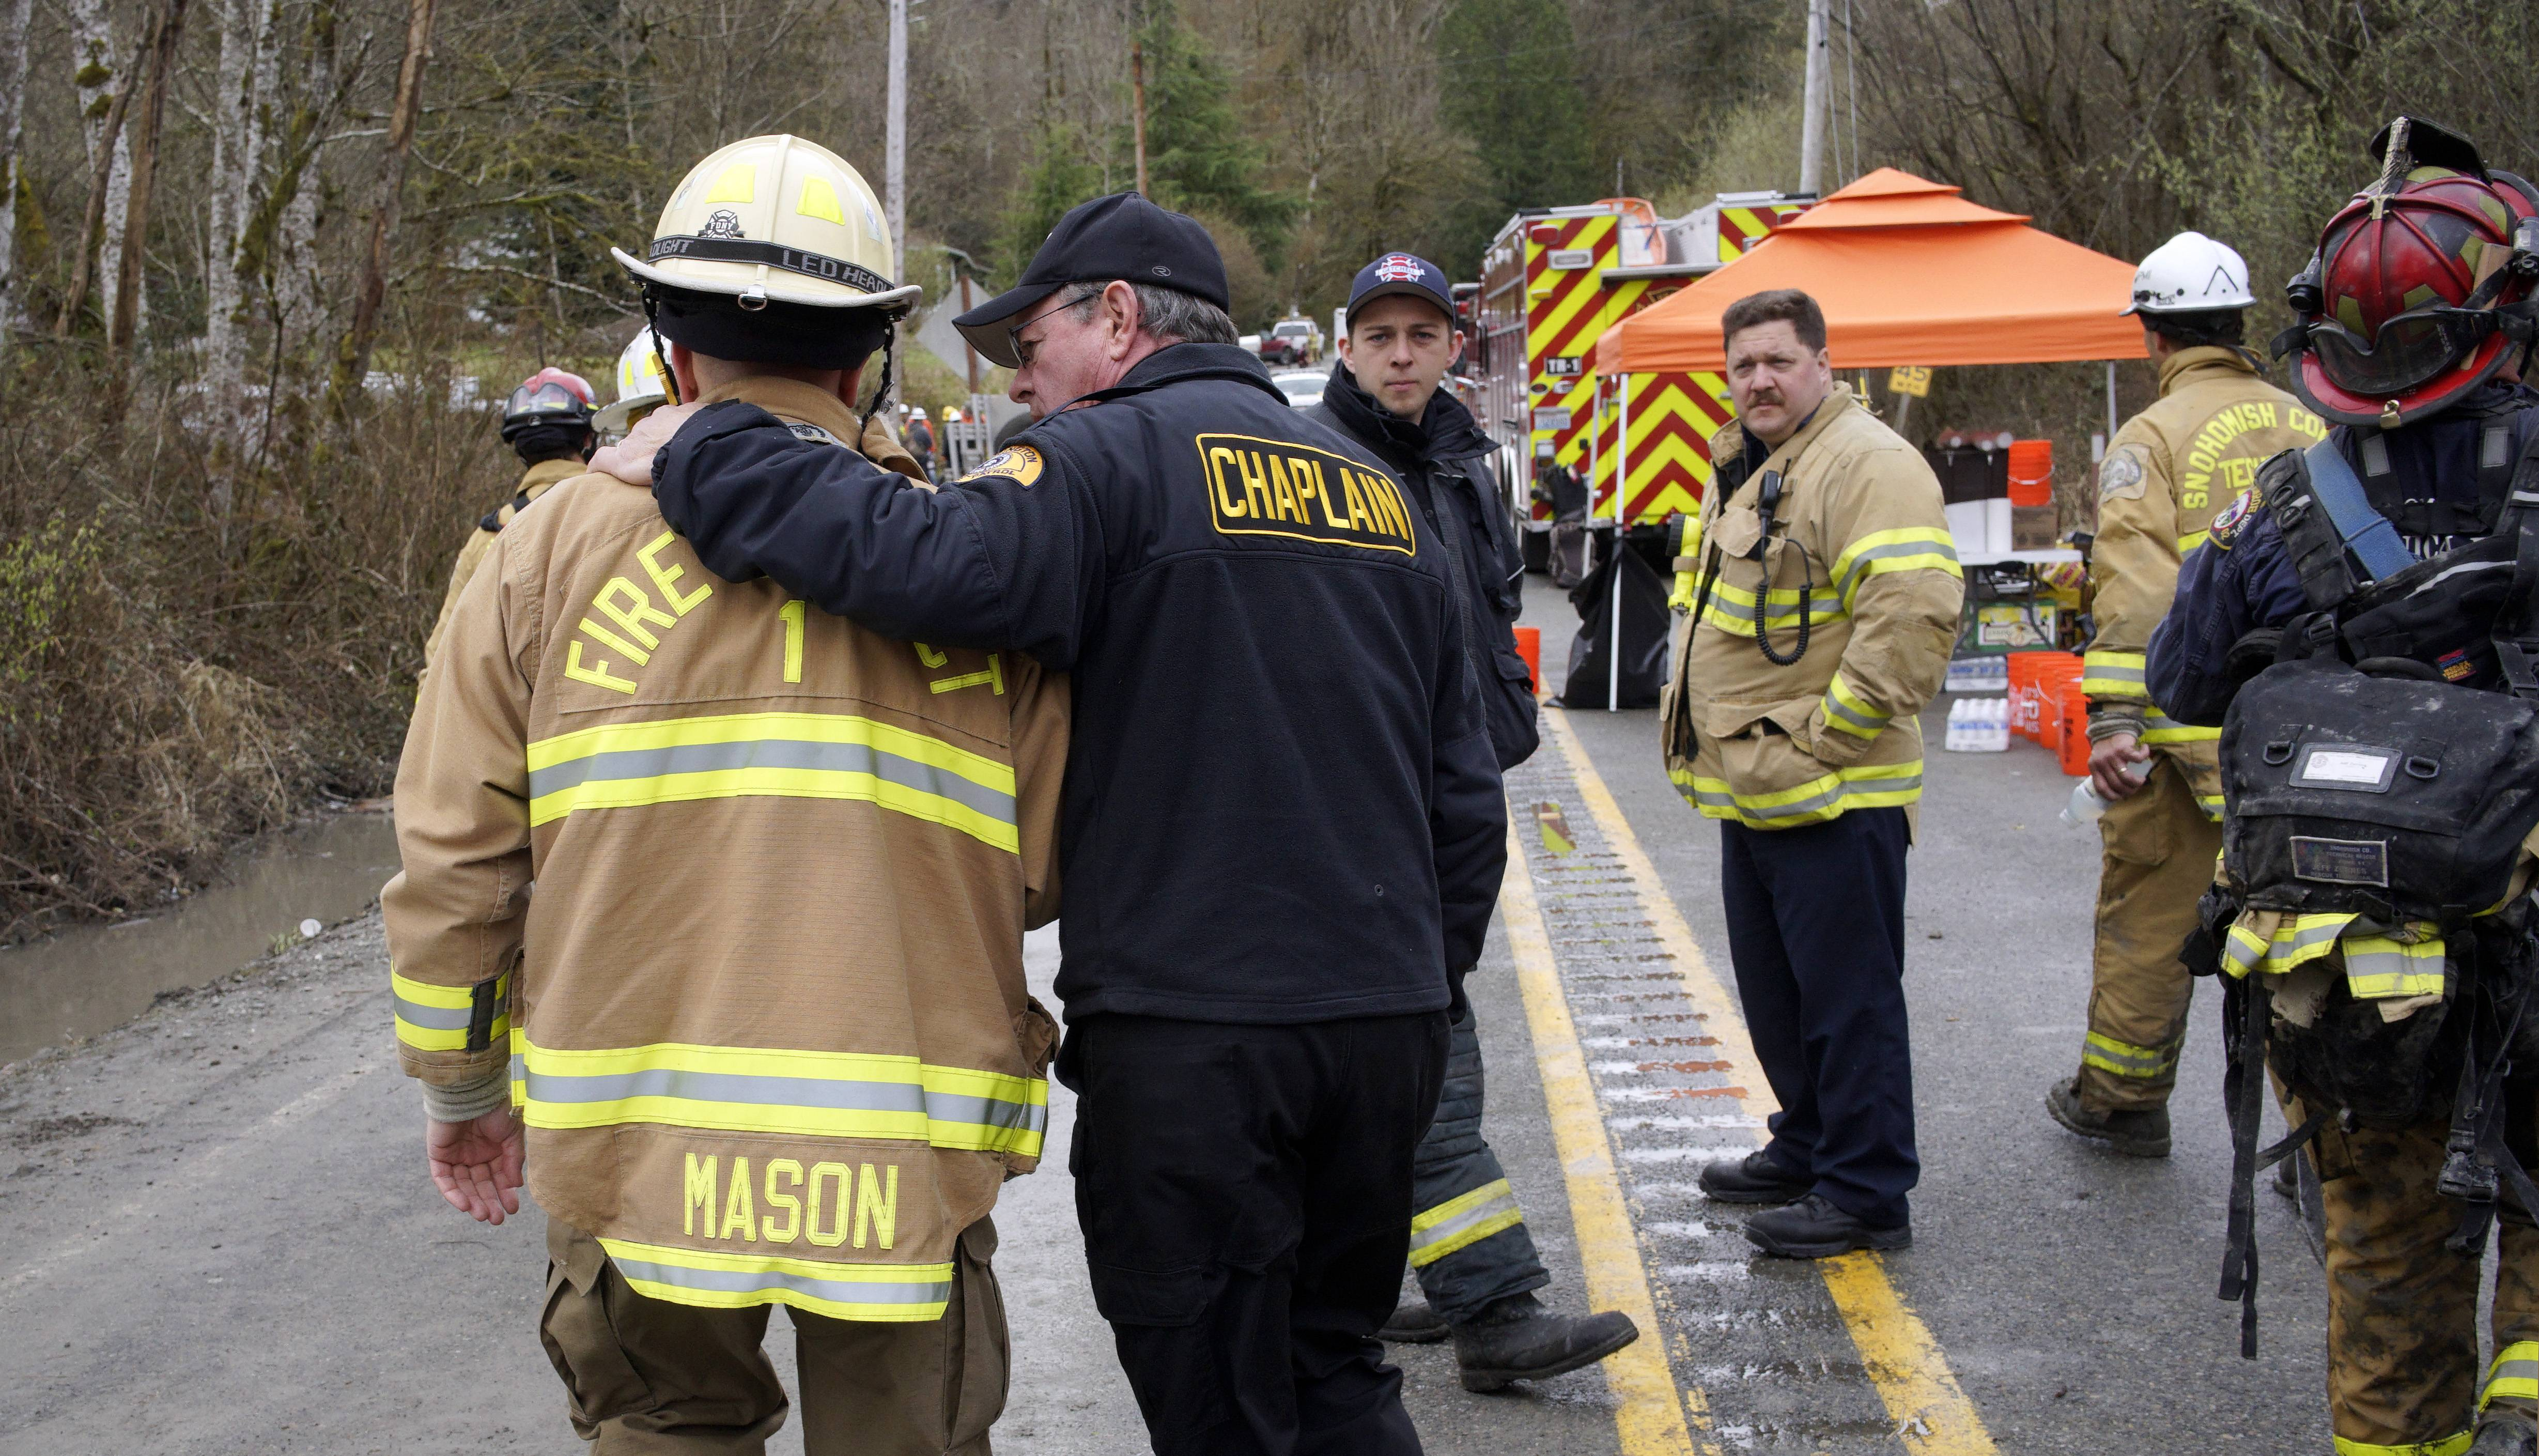 A chaplain from the Washington State Patrol, right, walks with his arm around Snohomish County battalion chief Steve Mason near the scene of the mudslide Wednesday in Oso, Wash. Sixteen bodies have been recovered, and scores of others are still missing.